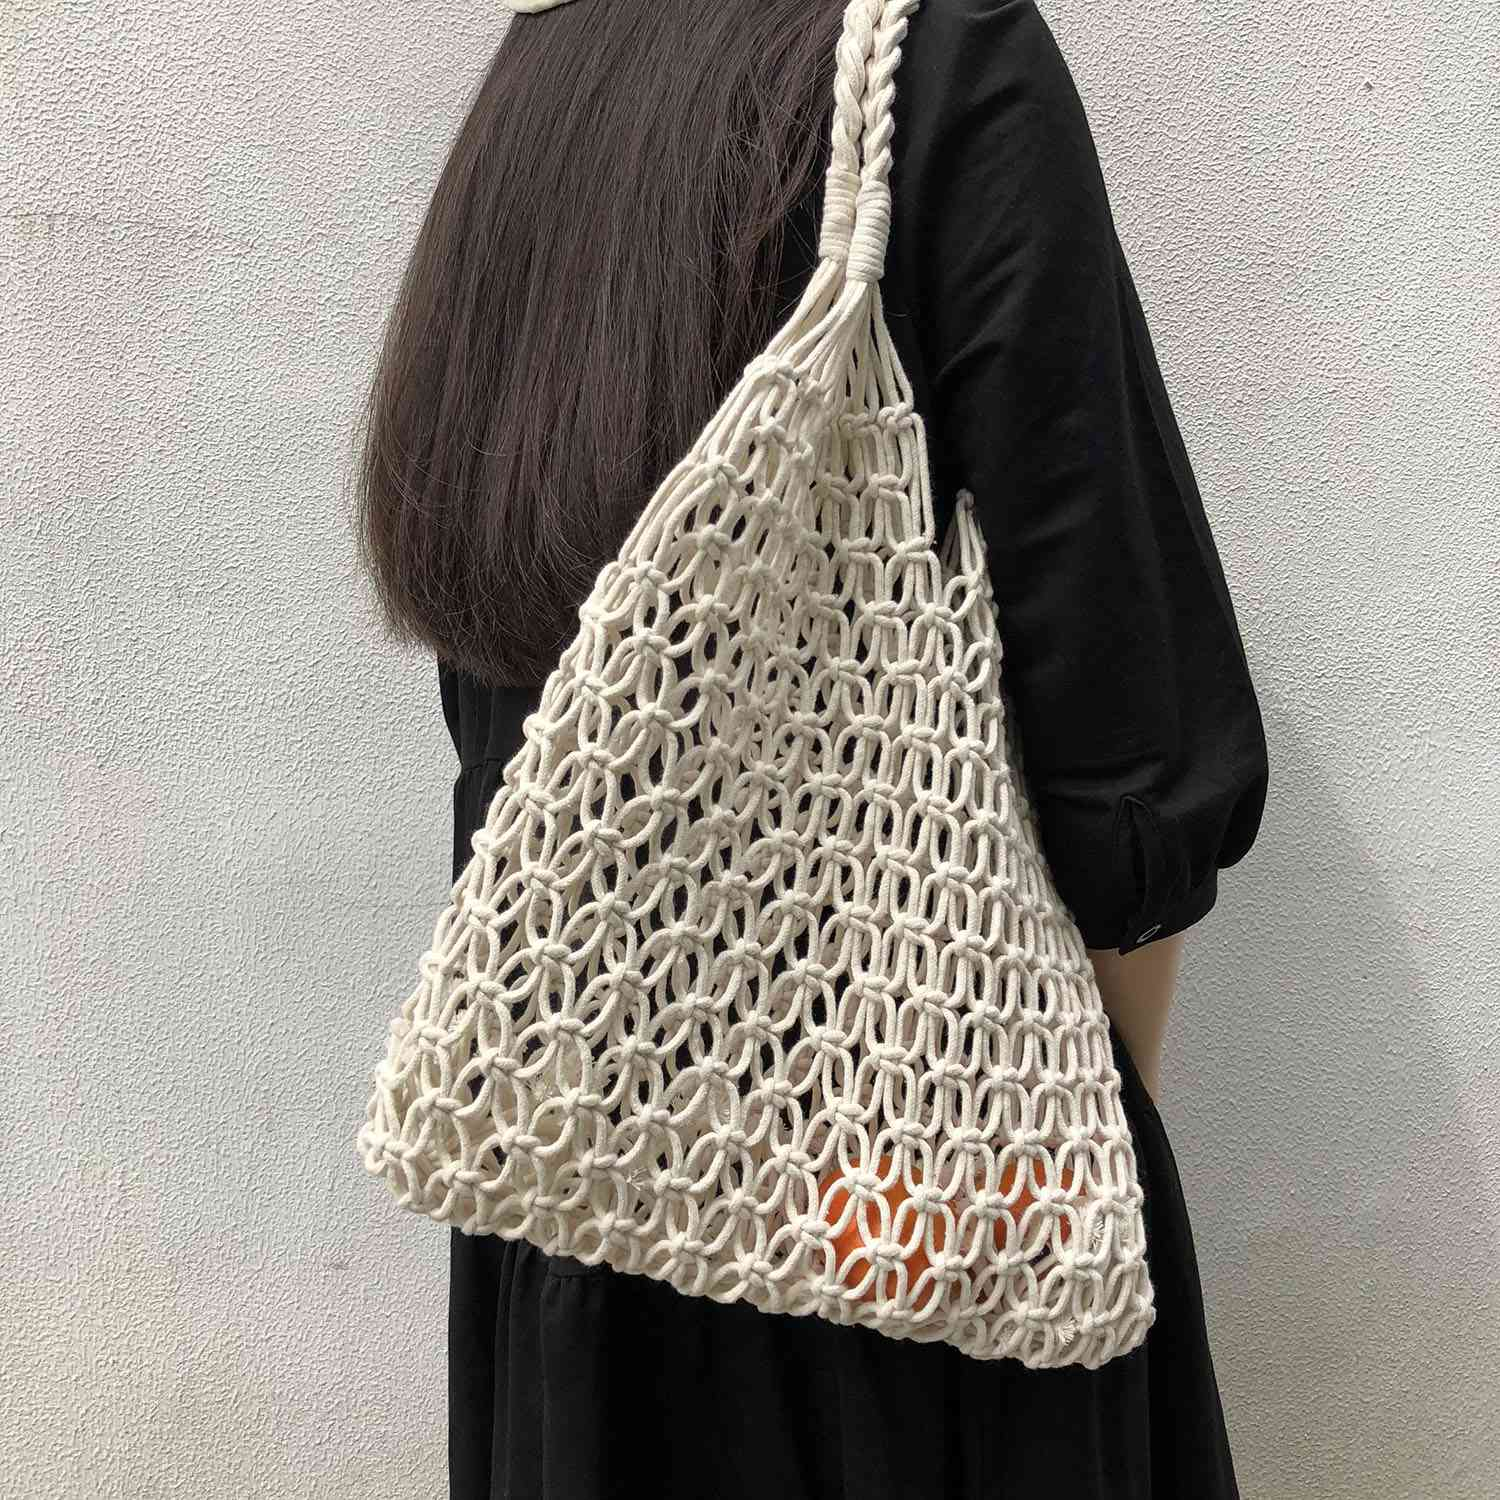 ABDB-Fashion Popular Woven Bag Mesh Rope Weaving Tie Buckle Reticulate Hollow Bag No Lined Net Shoulder BagABDB-Fashion Popular Woven Bag Mesh Rope Weaving Tie Buckle Reticulate Hollow Bag No Lined Net Shoulder Bag